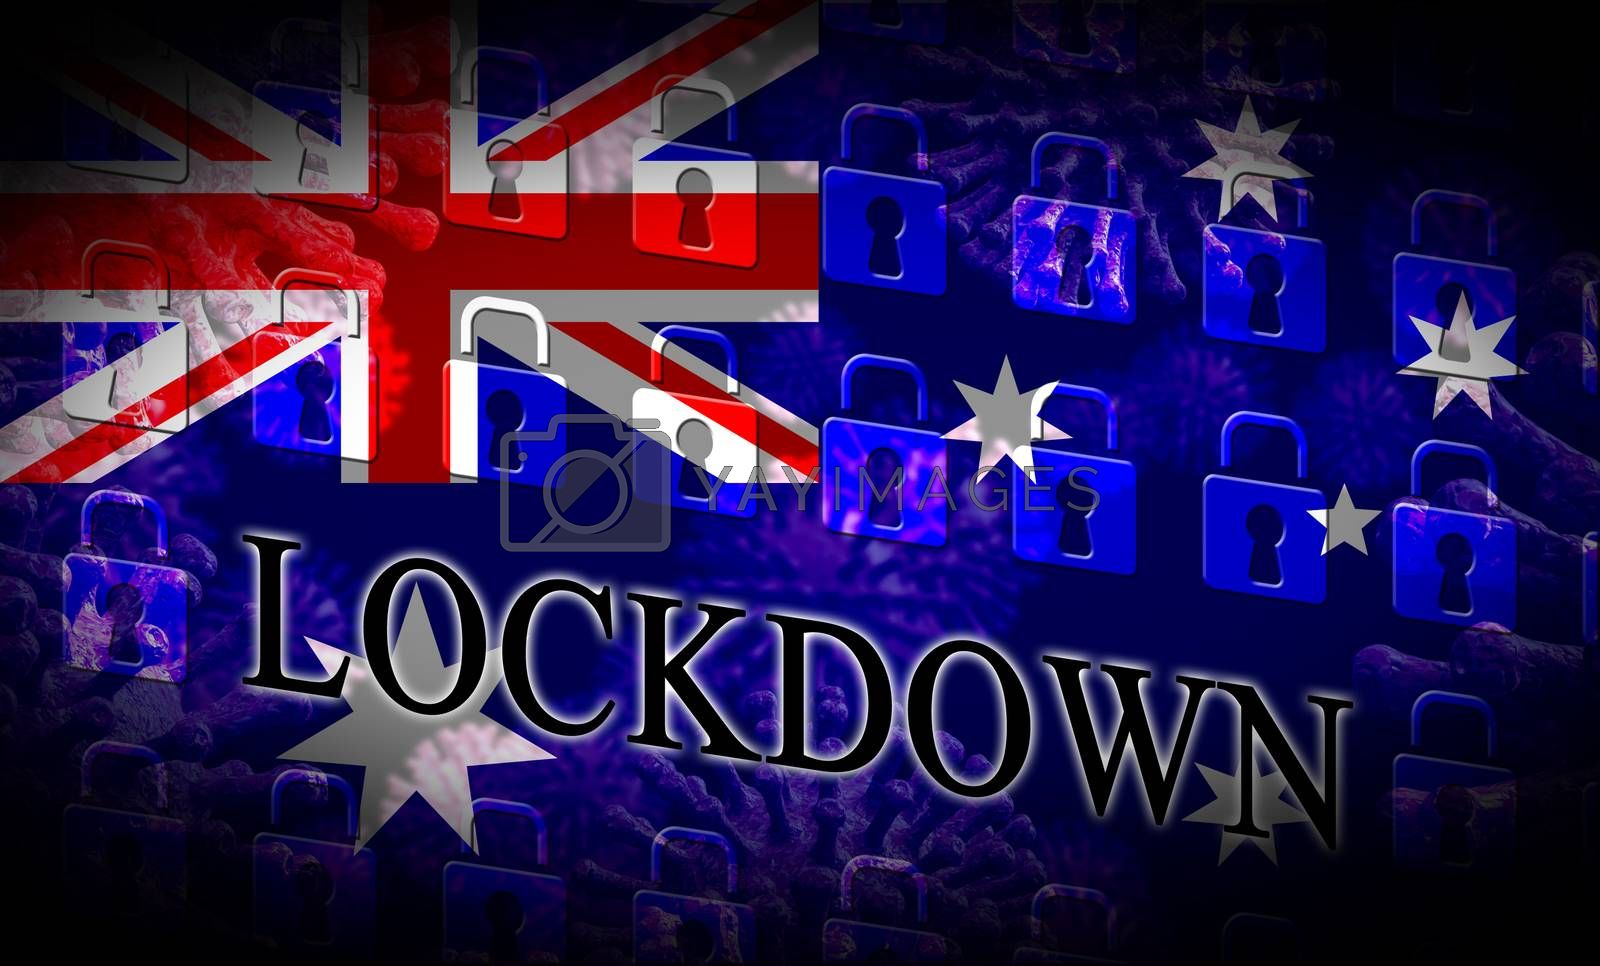 Australia lockdown to prevent coronavirus epidemic and outbreak. Covid 19 Australian precautions to lock down disease infection - 3d Illustration